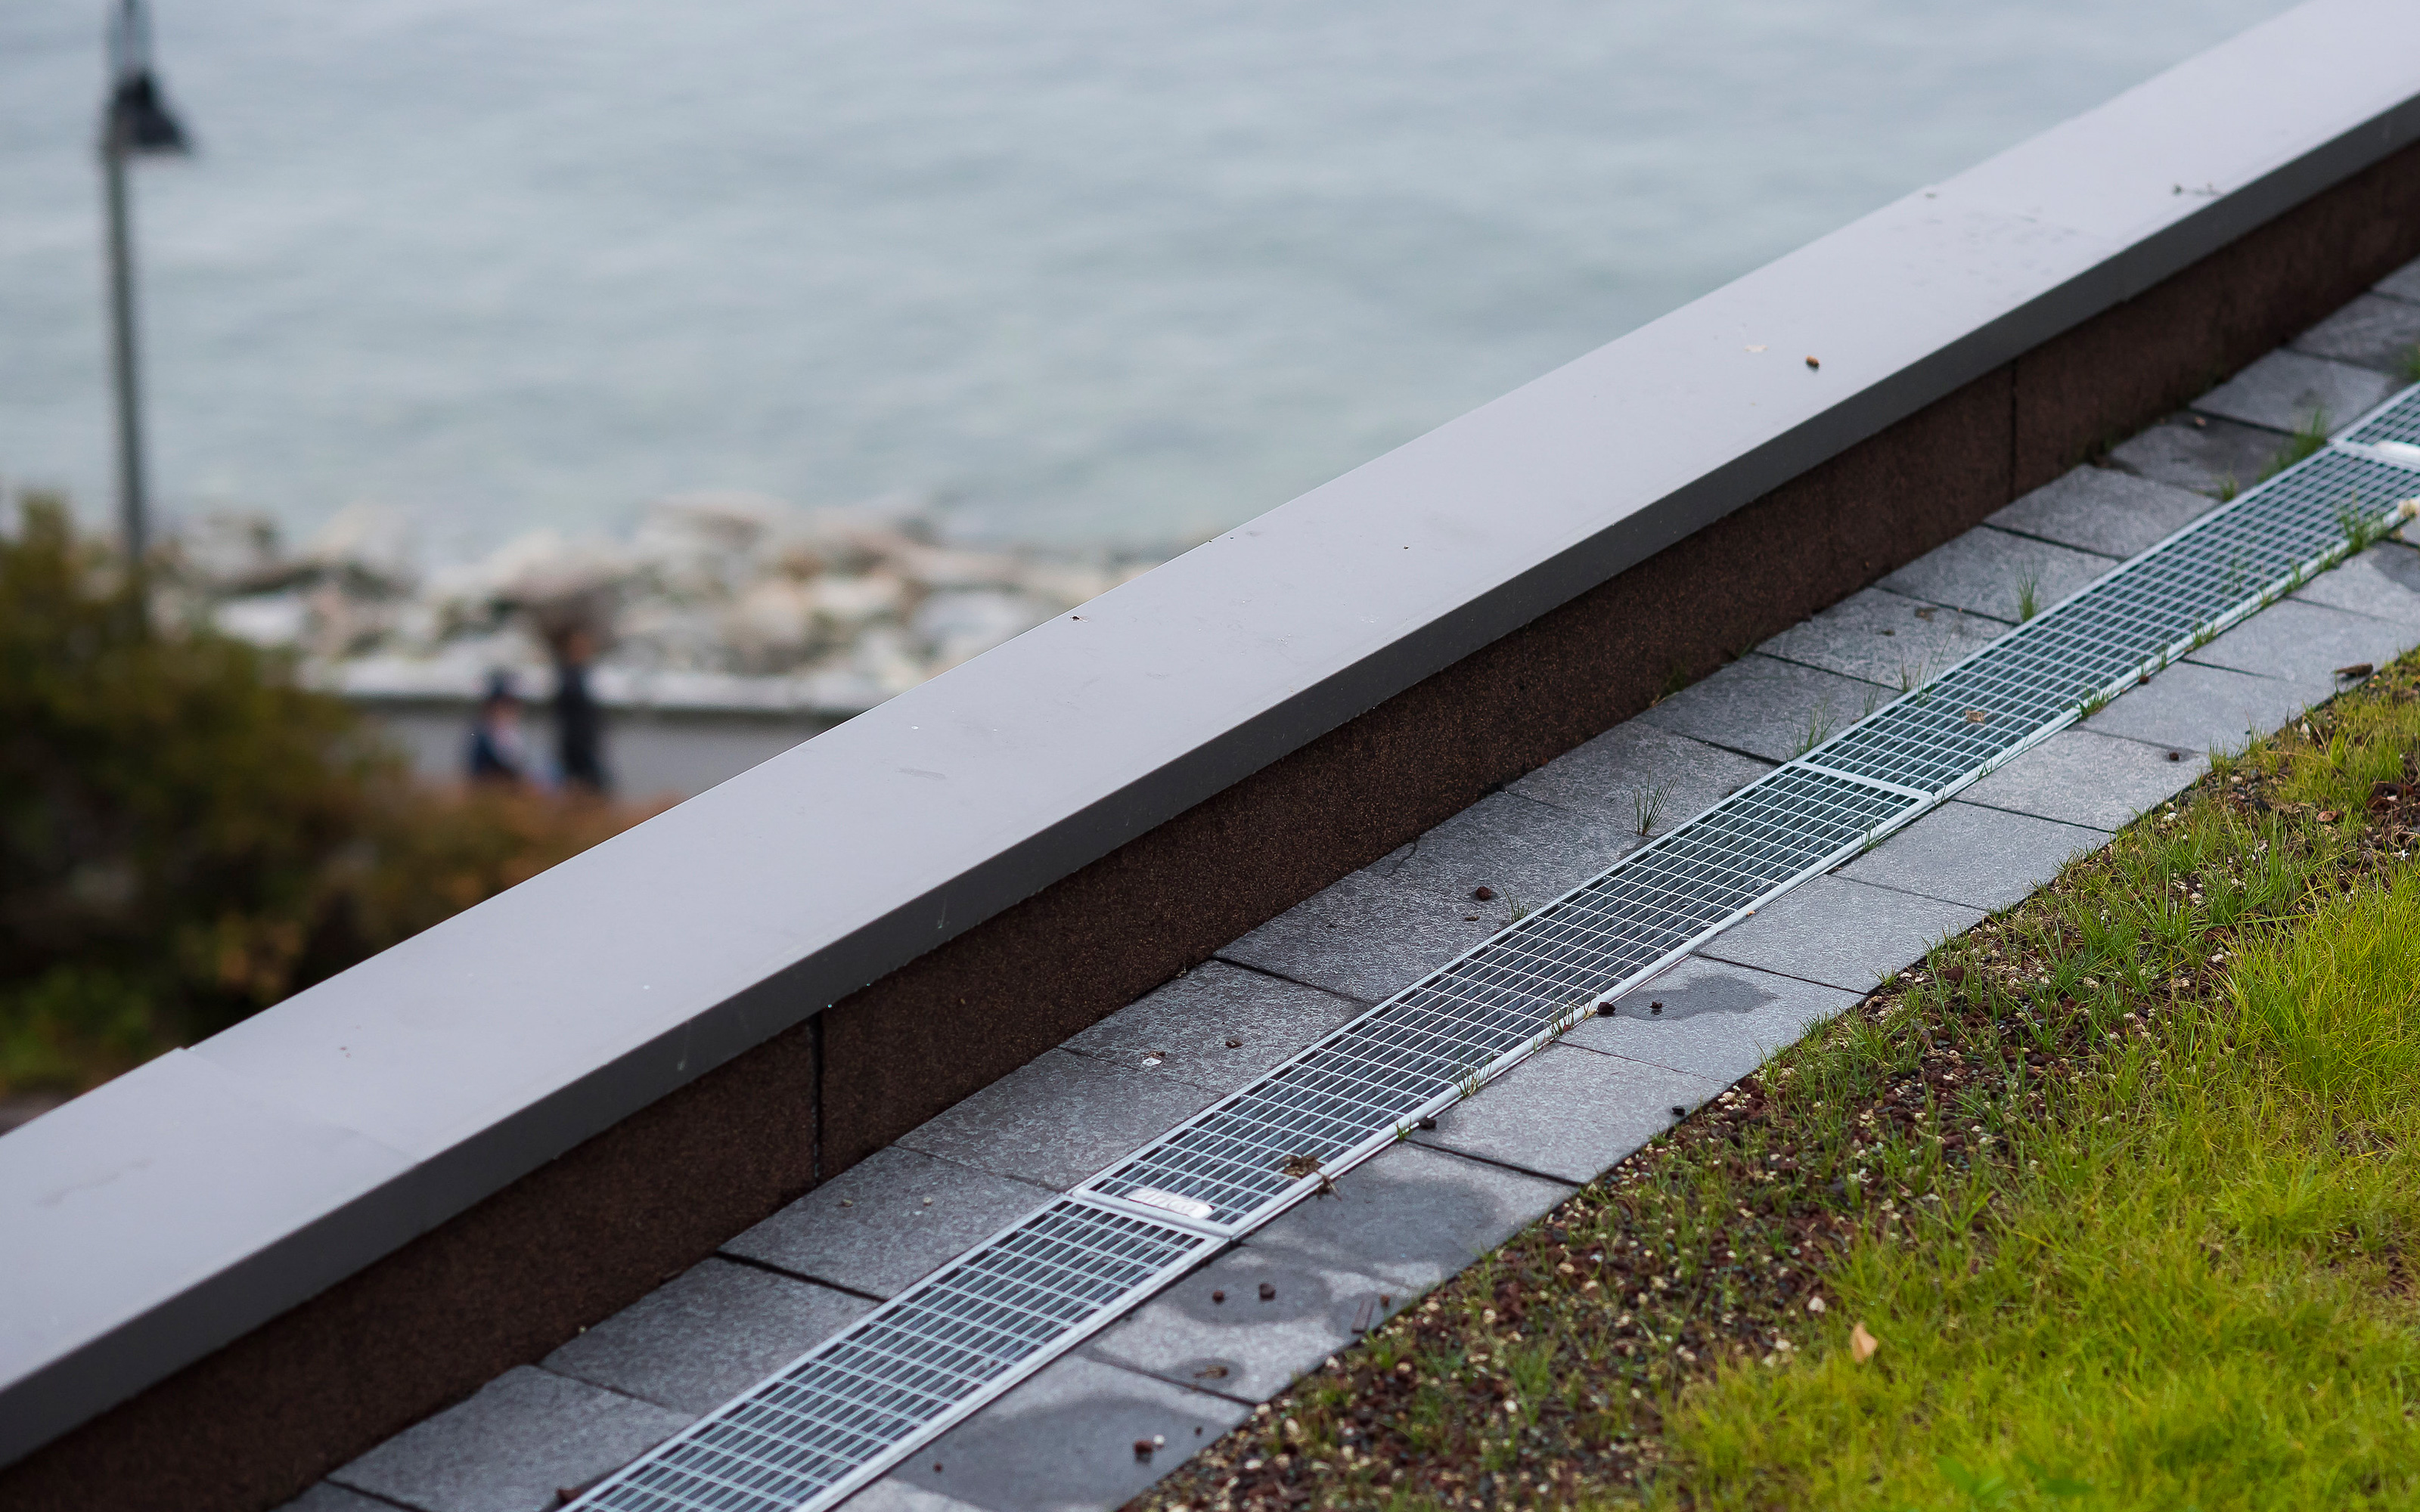 Drainage channels on a green roof